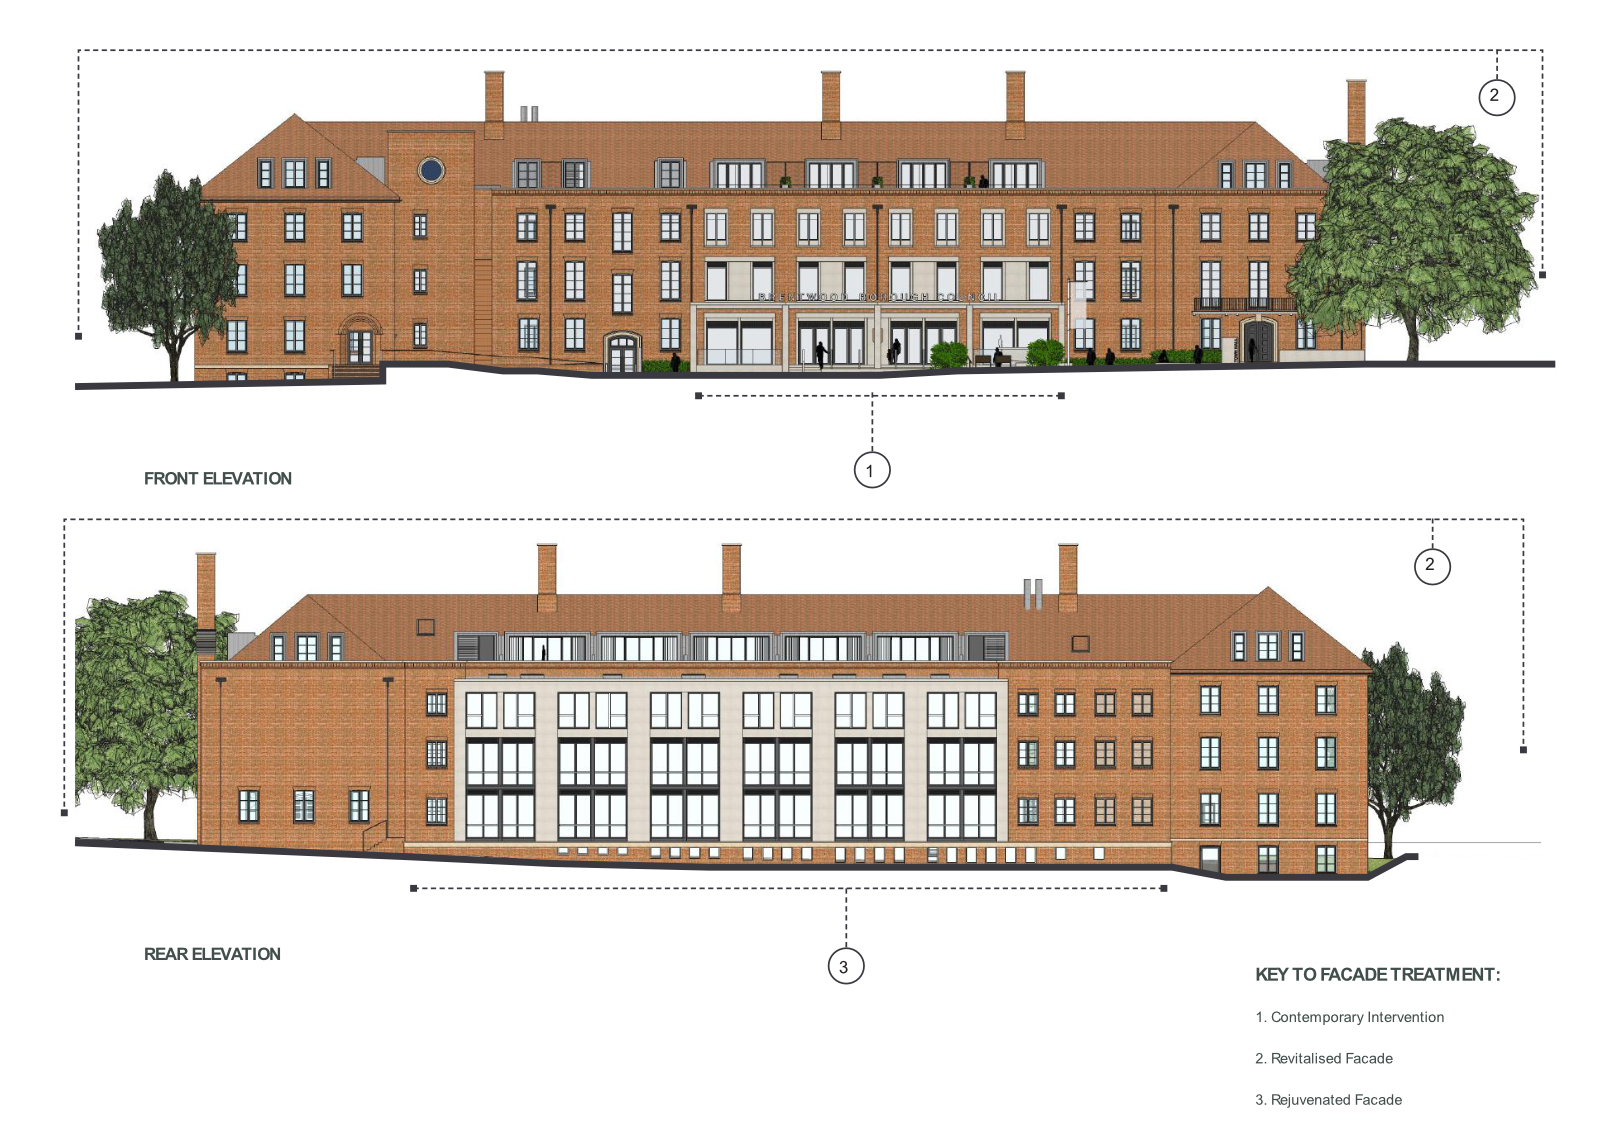 brentwood-council-elevations-drawing